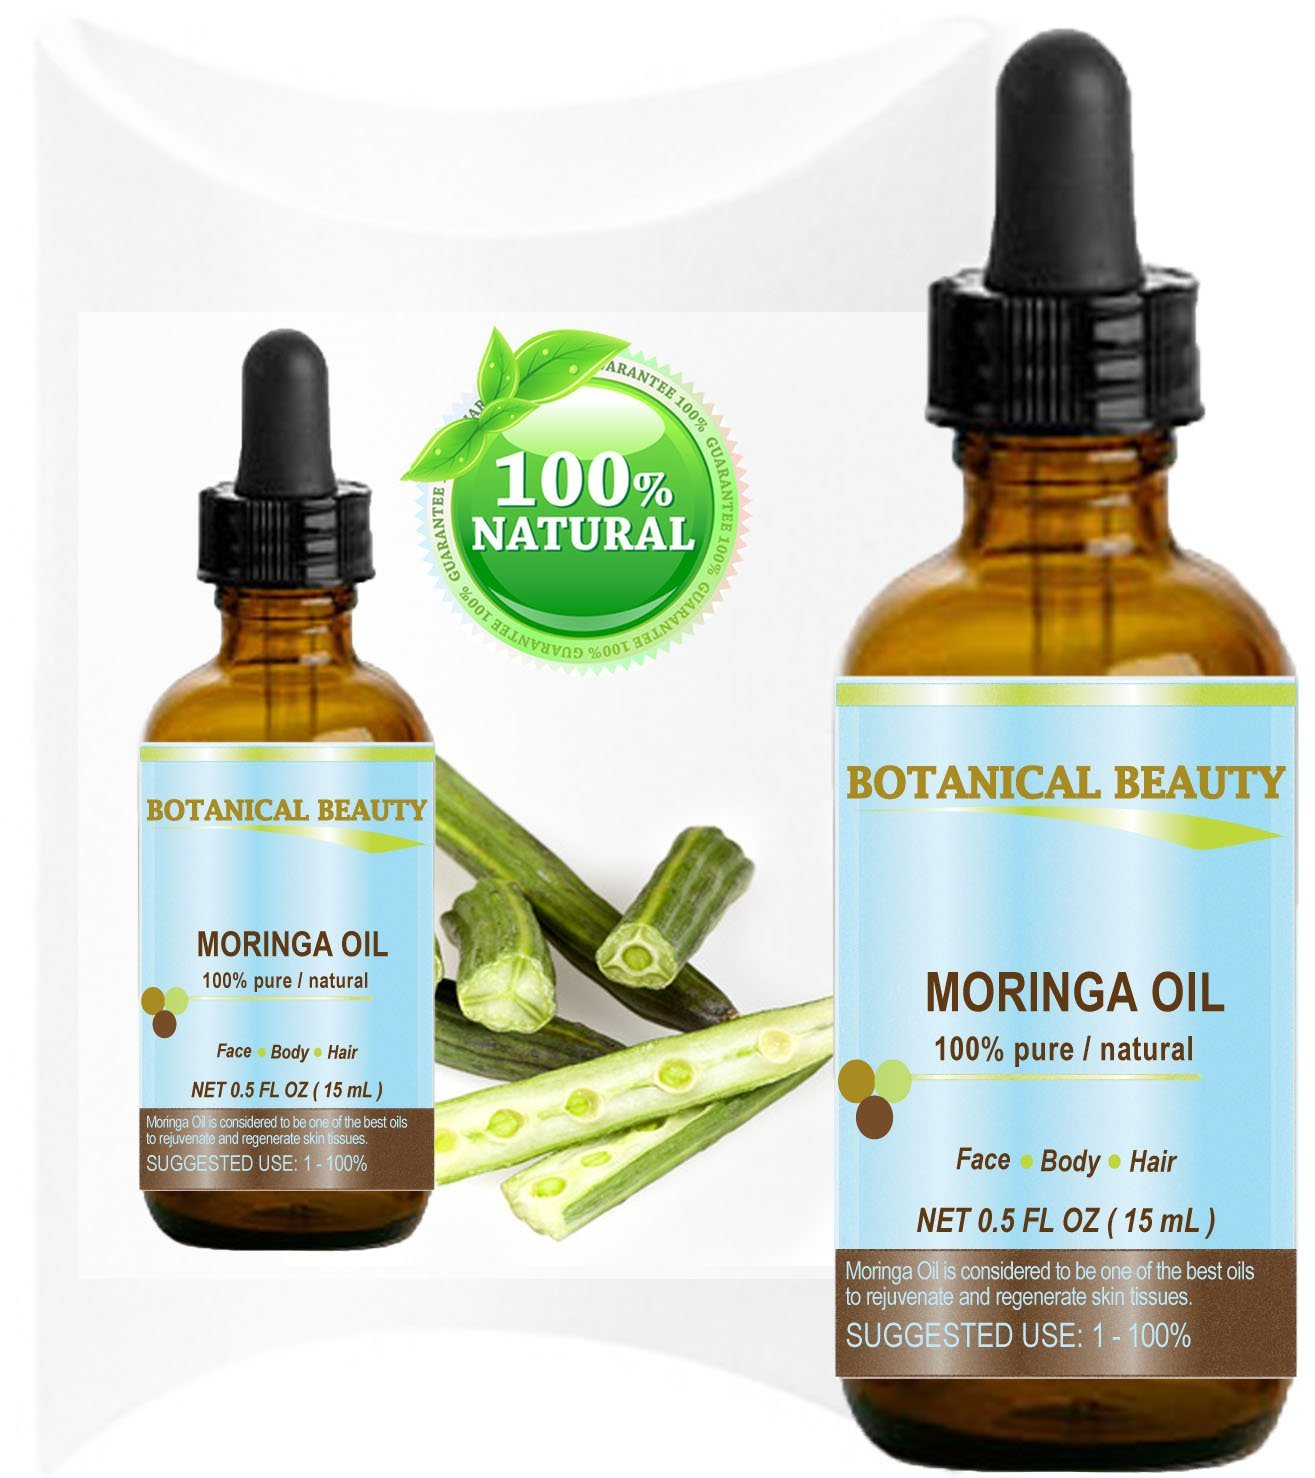 Botanical Beauty Moringa Oil for Face, Body, Hair, 0.5 fl. oz.